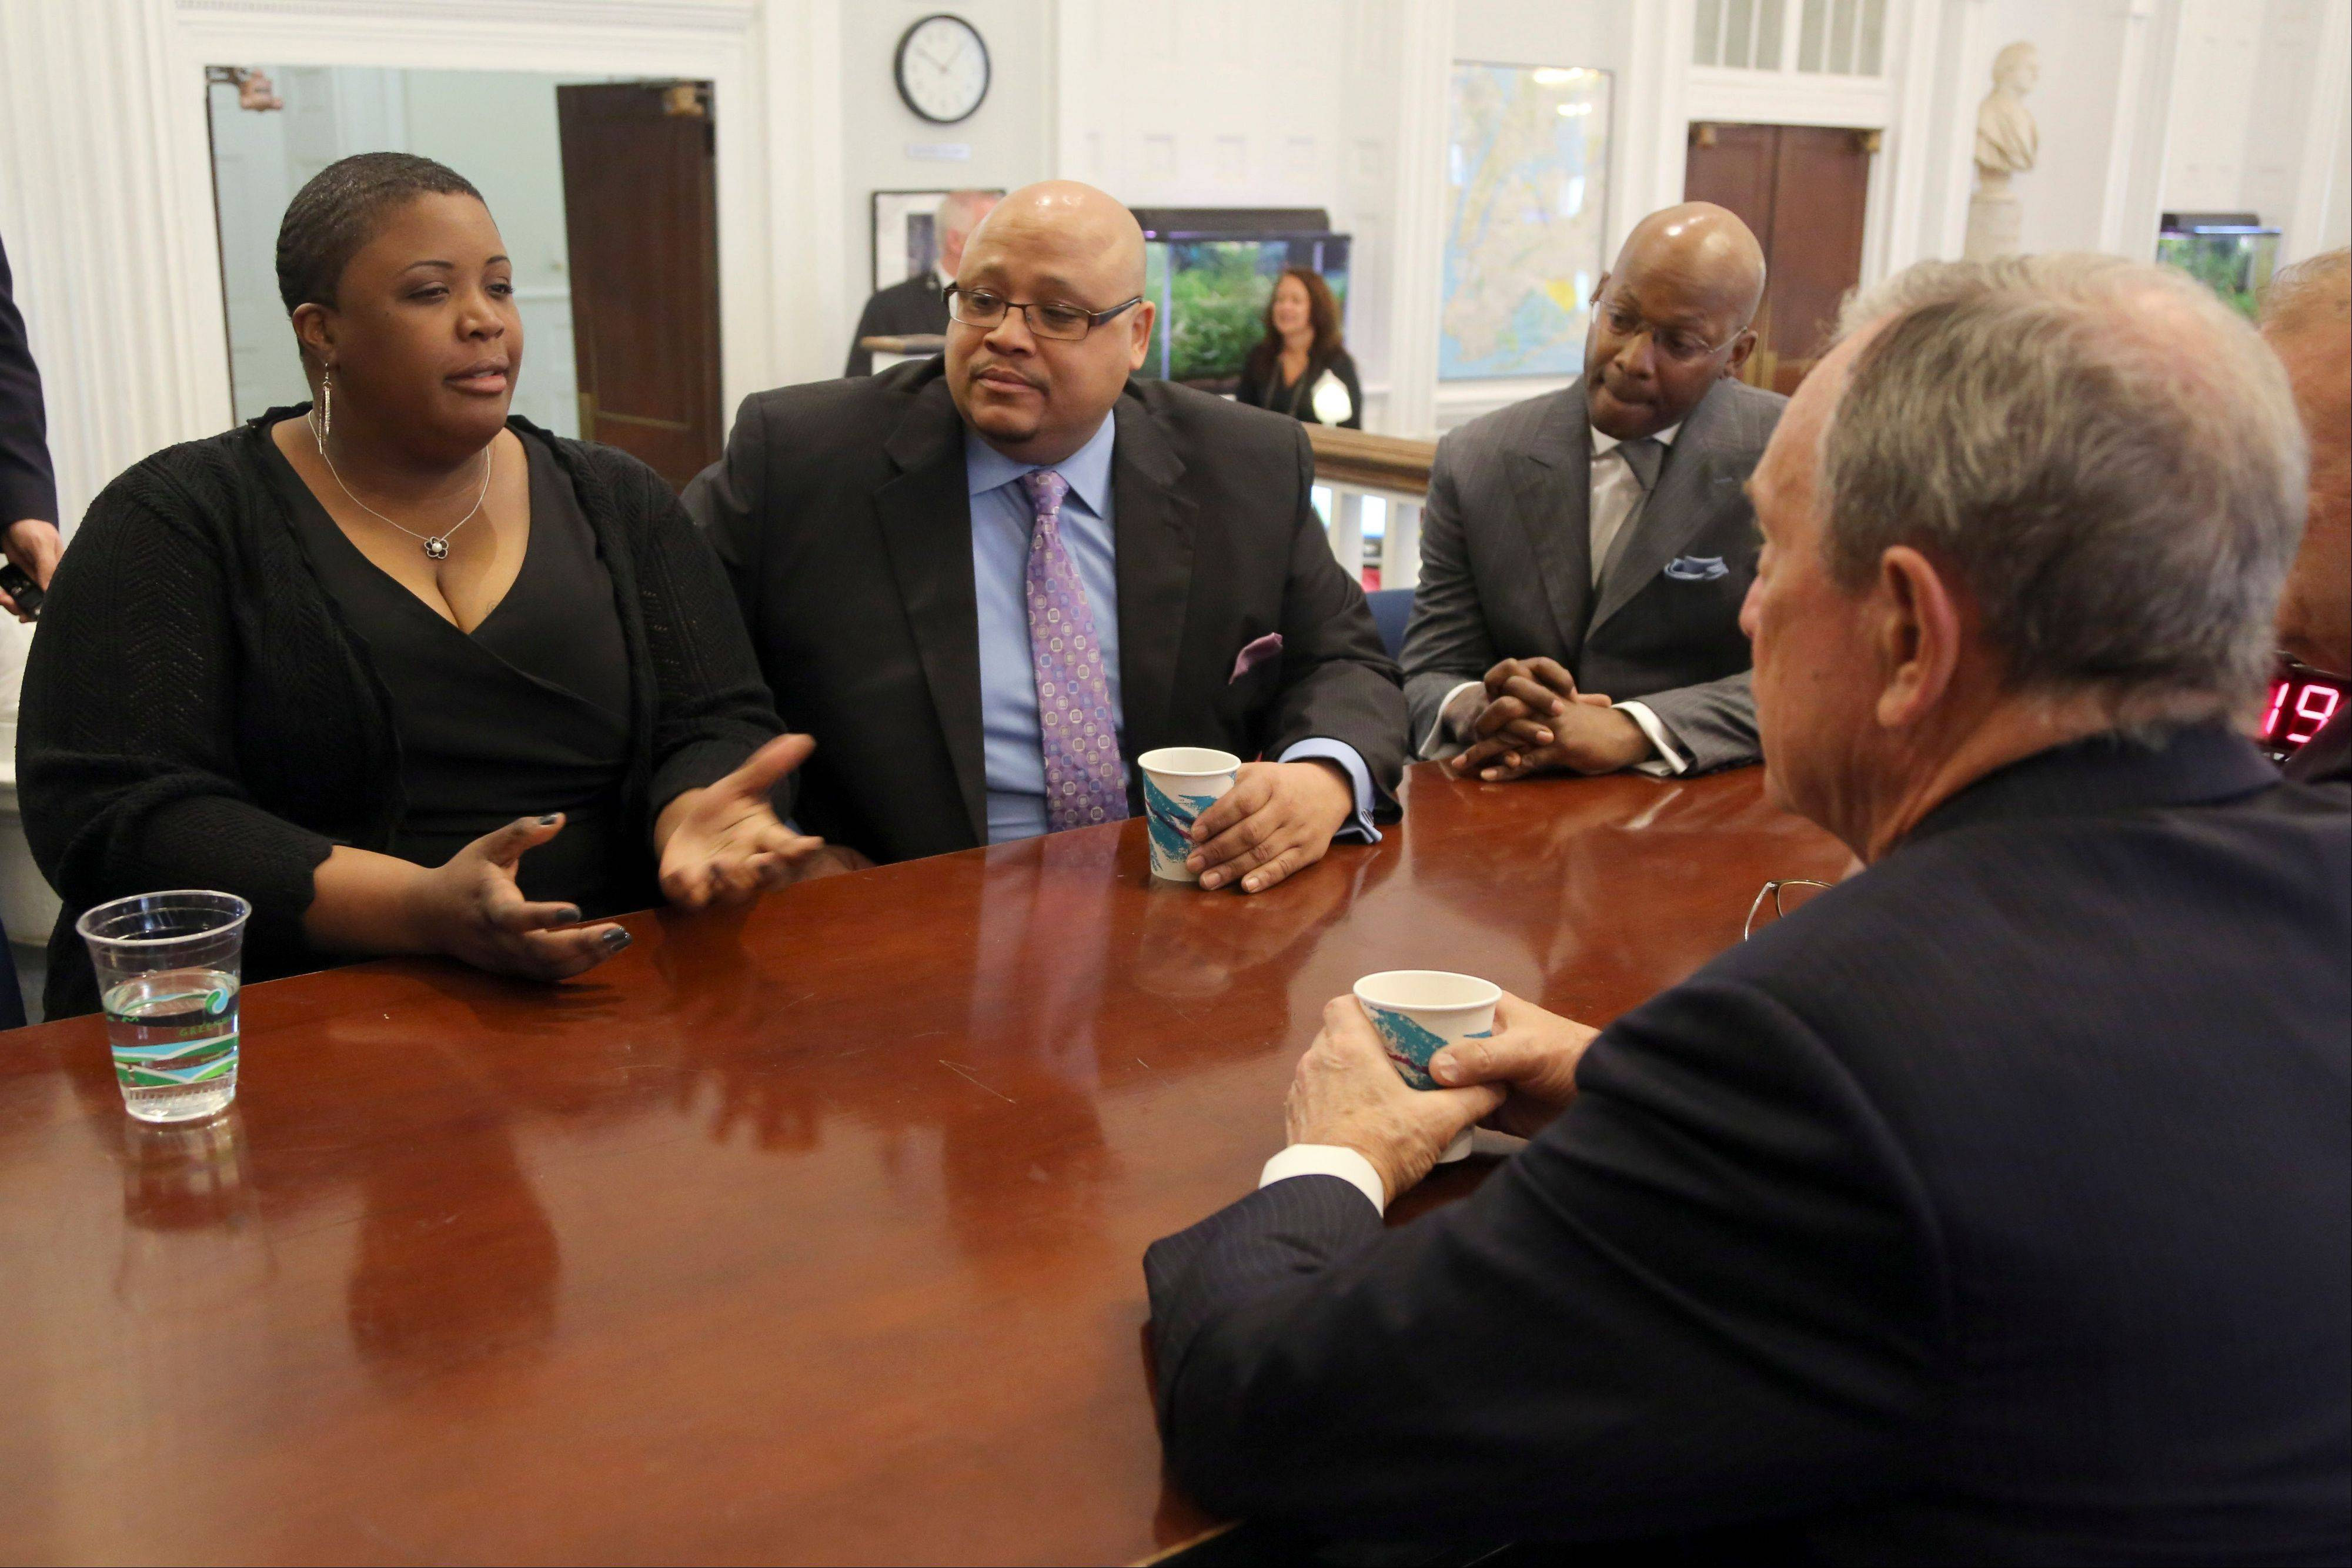 New York City Mayor Michael Bloomberg, foreground, meets with Cleopatra Cowley-Pendleton, left, and Nathaniel A. Pendleton Sr., center, and Van Vincent, Thursday in New York. The Pendletons are the parents of Hadiya Pendleton, who performed at President Obama�s inauguration and was shot and killed in Chicago in February. She was 15 years old. Cowley-Pendleton and Pendleton recently filmed a television commercial for the Mayor�s anti-gun violence coalition. Vincent is a cousin of Hadiya�s.